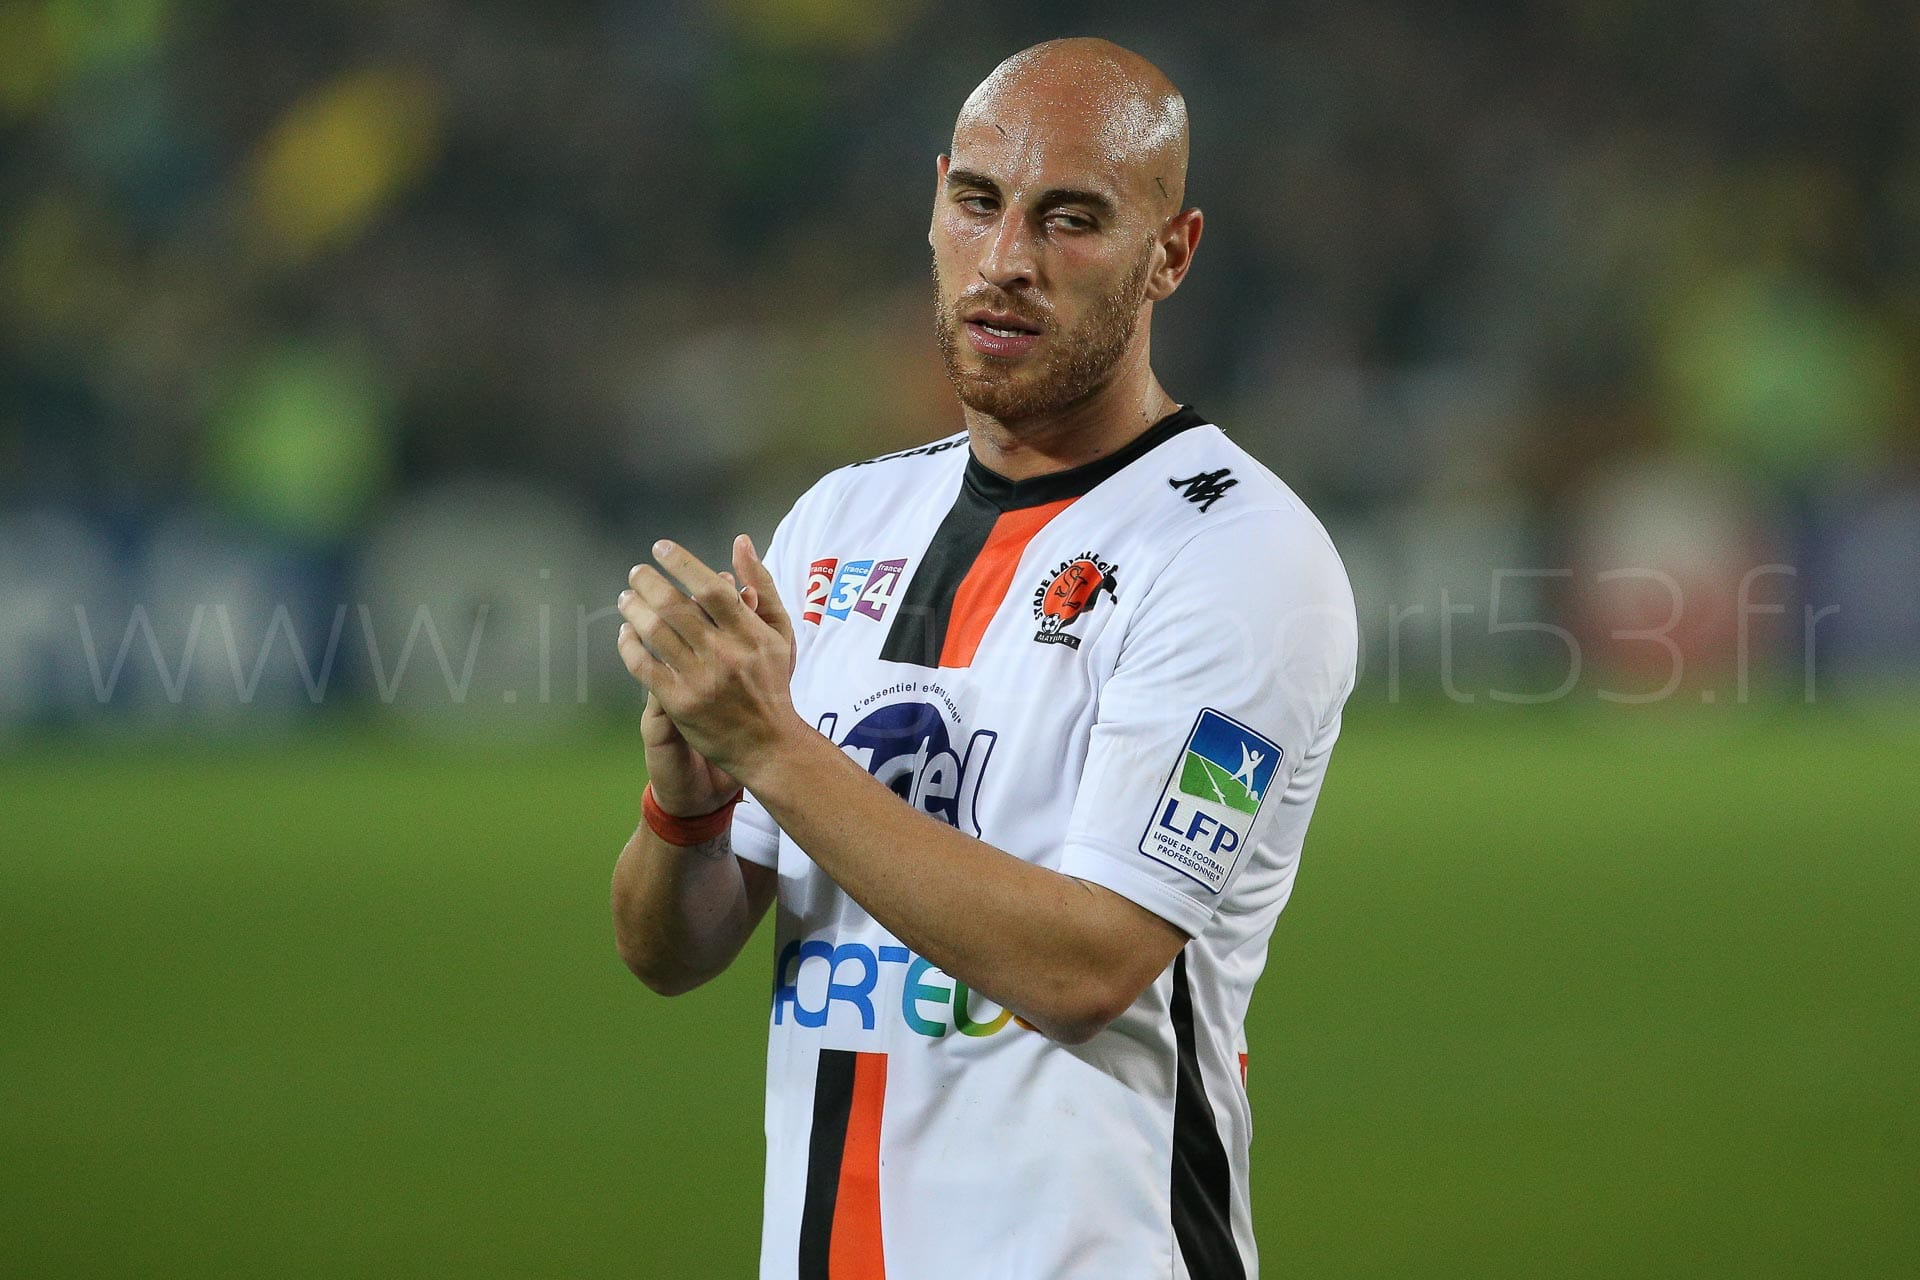 Ludovic GUERRIERO (Stade Lavallois)